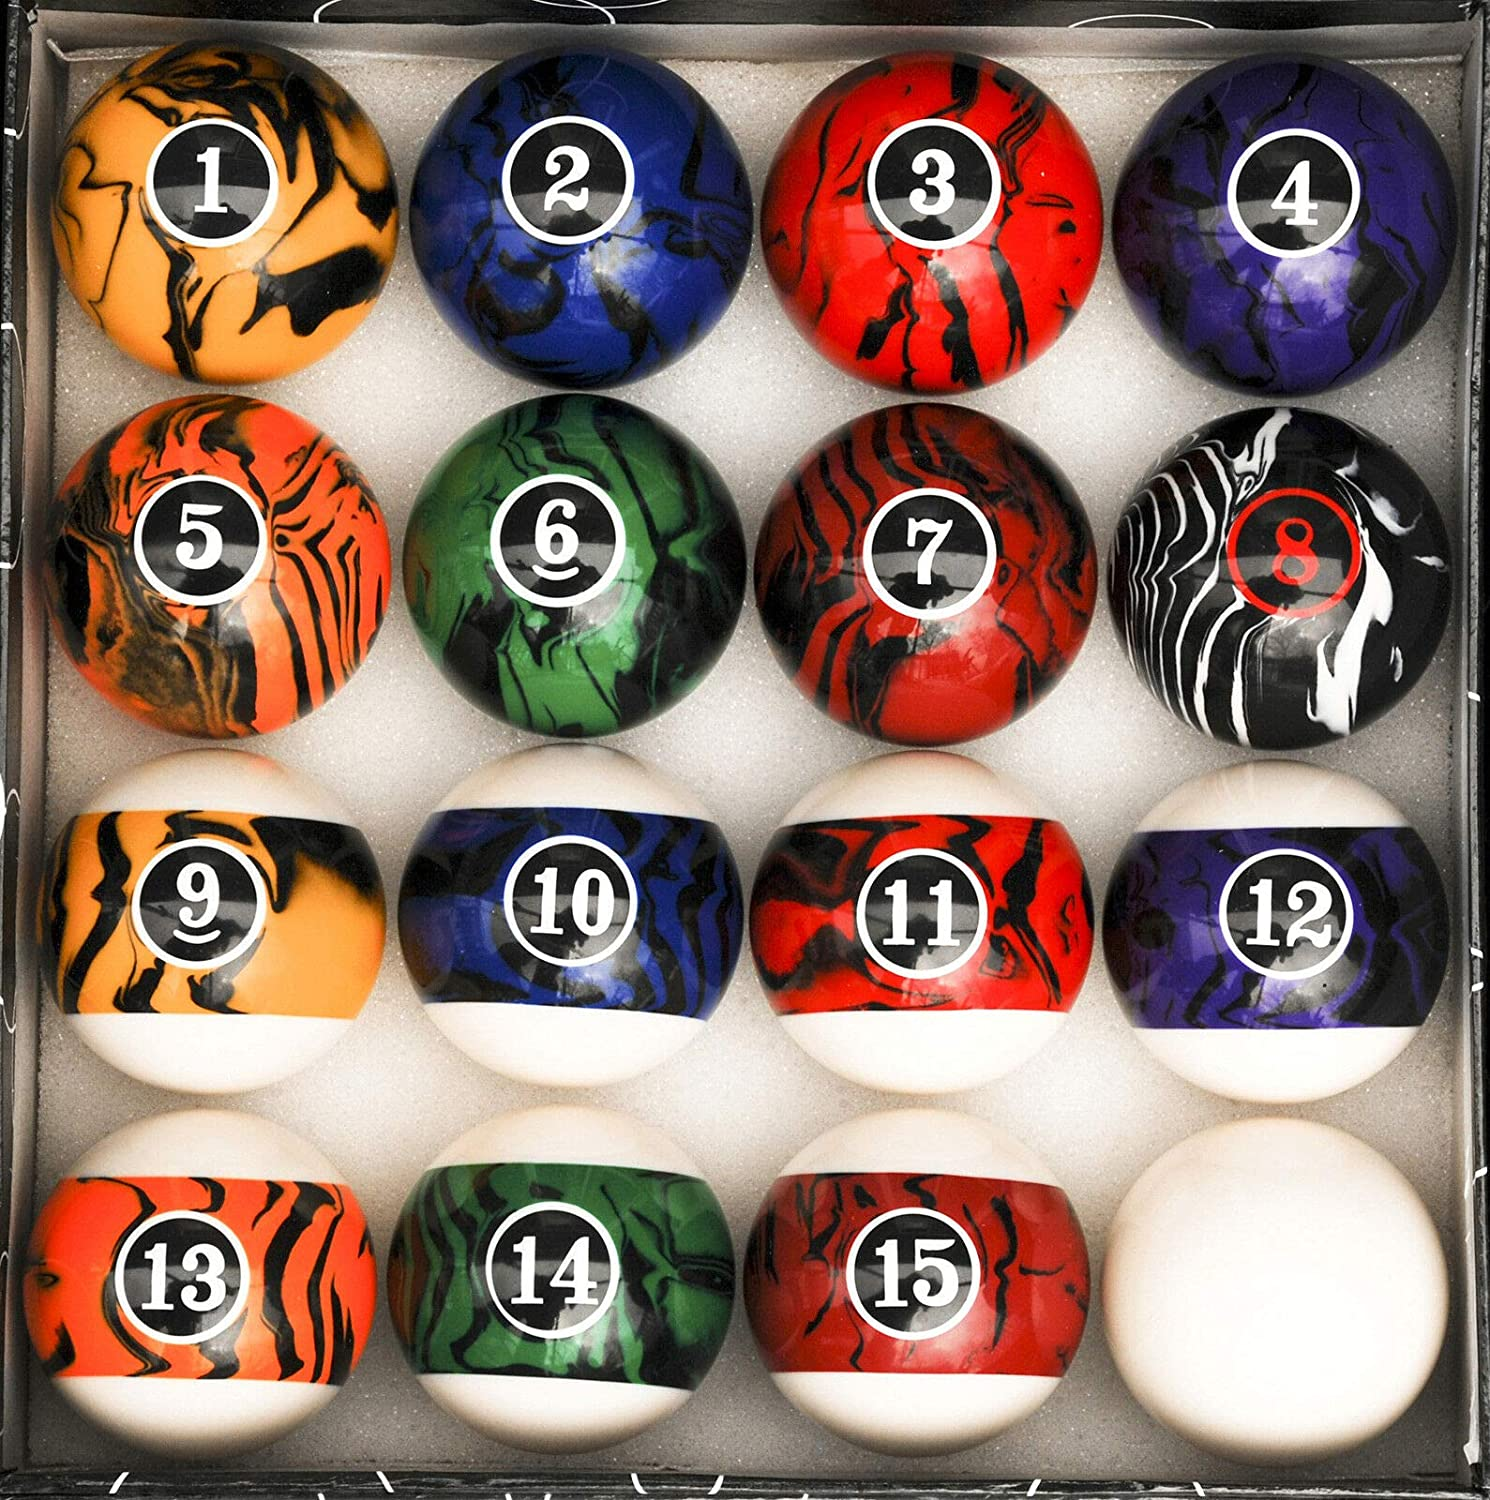 Uncommon Dark Color Marble Year-end annual account Swirl Super beauty product restock quality top Pool Ball Set Table Re Billiard